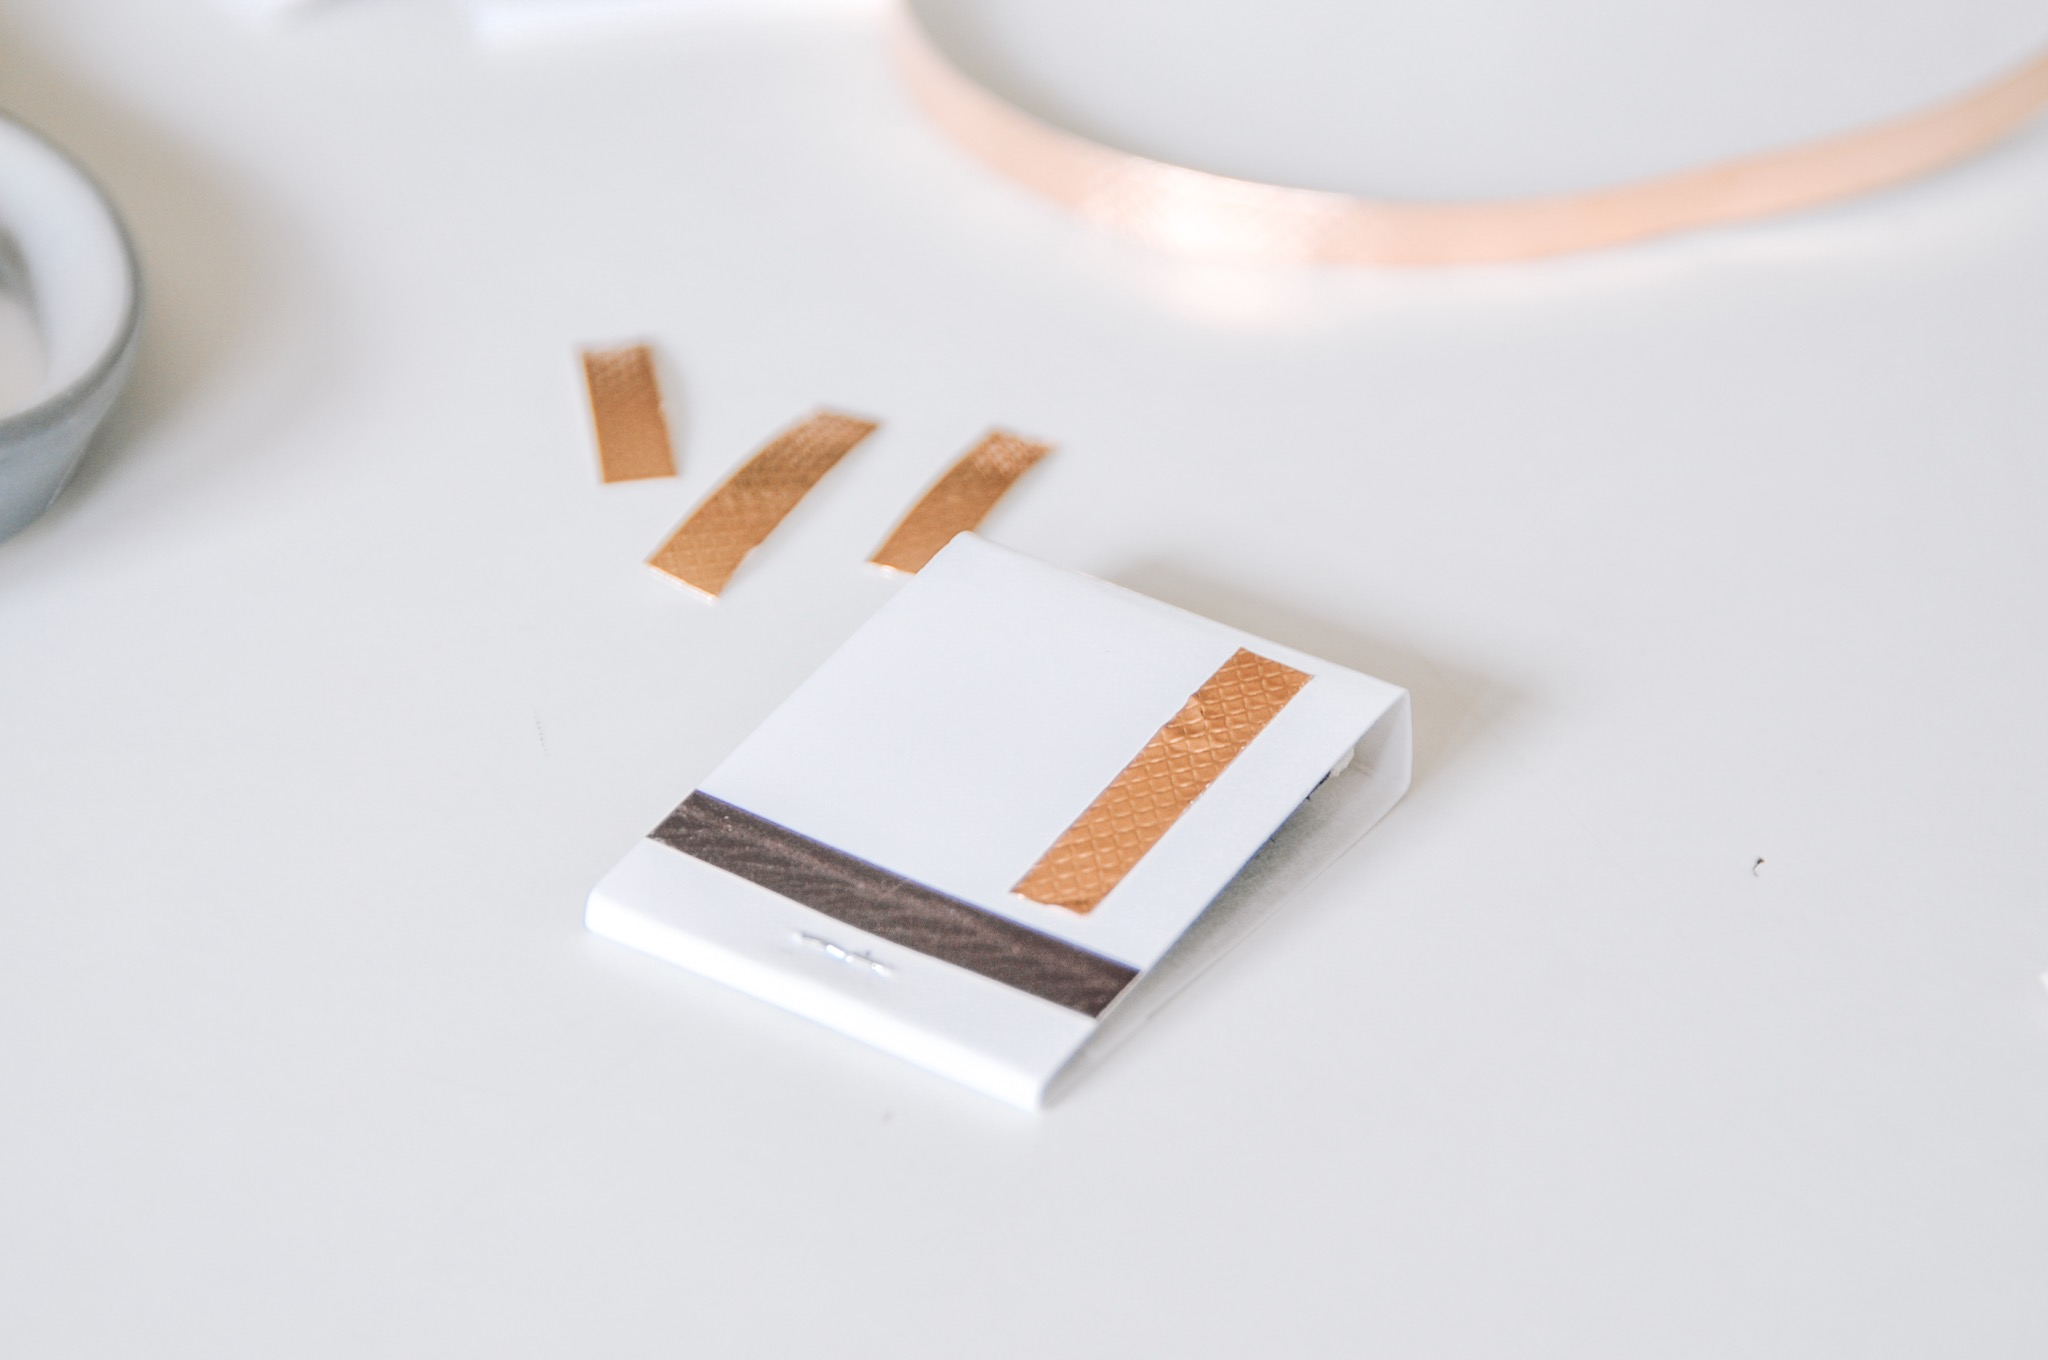 stylish copper tape matchbooks diy craft in style